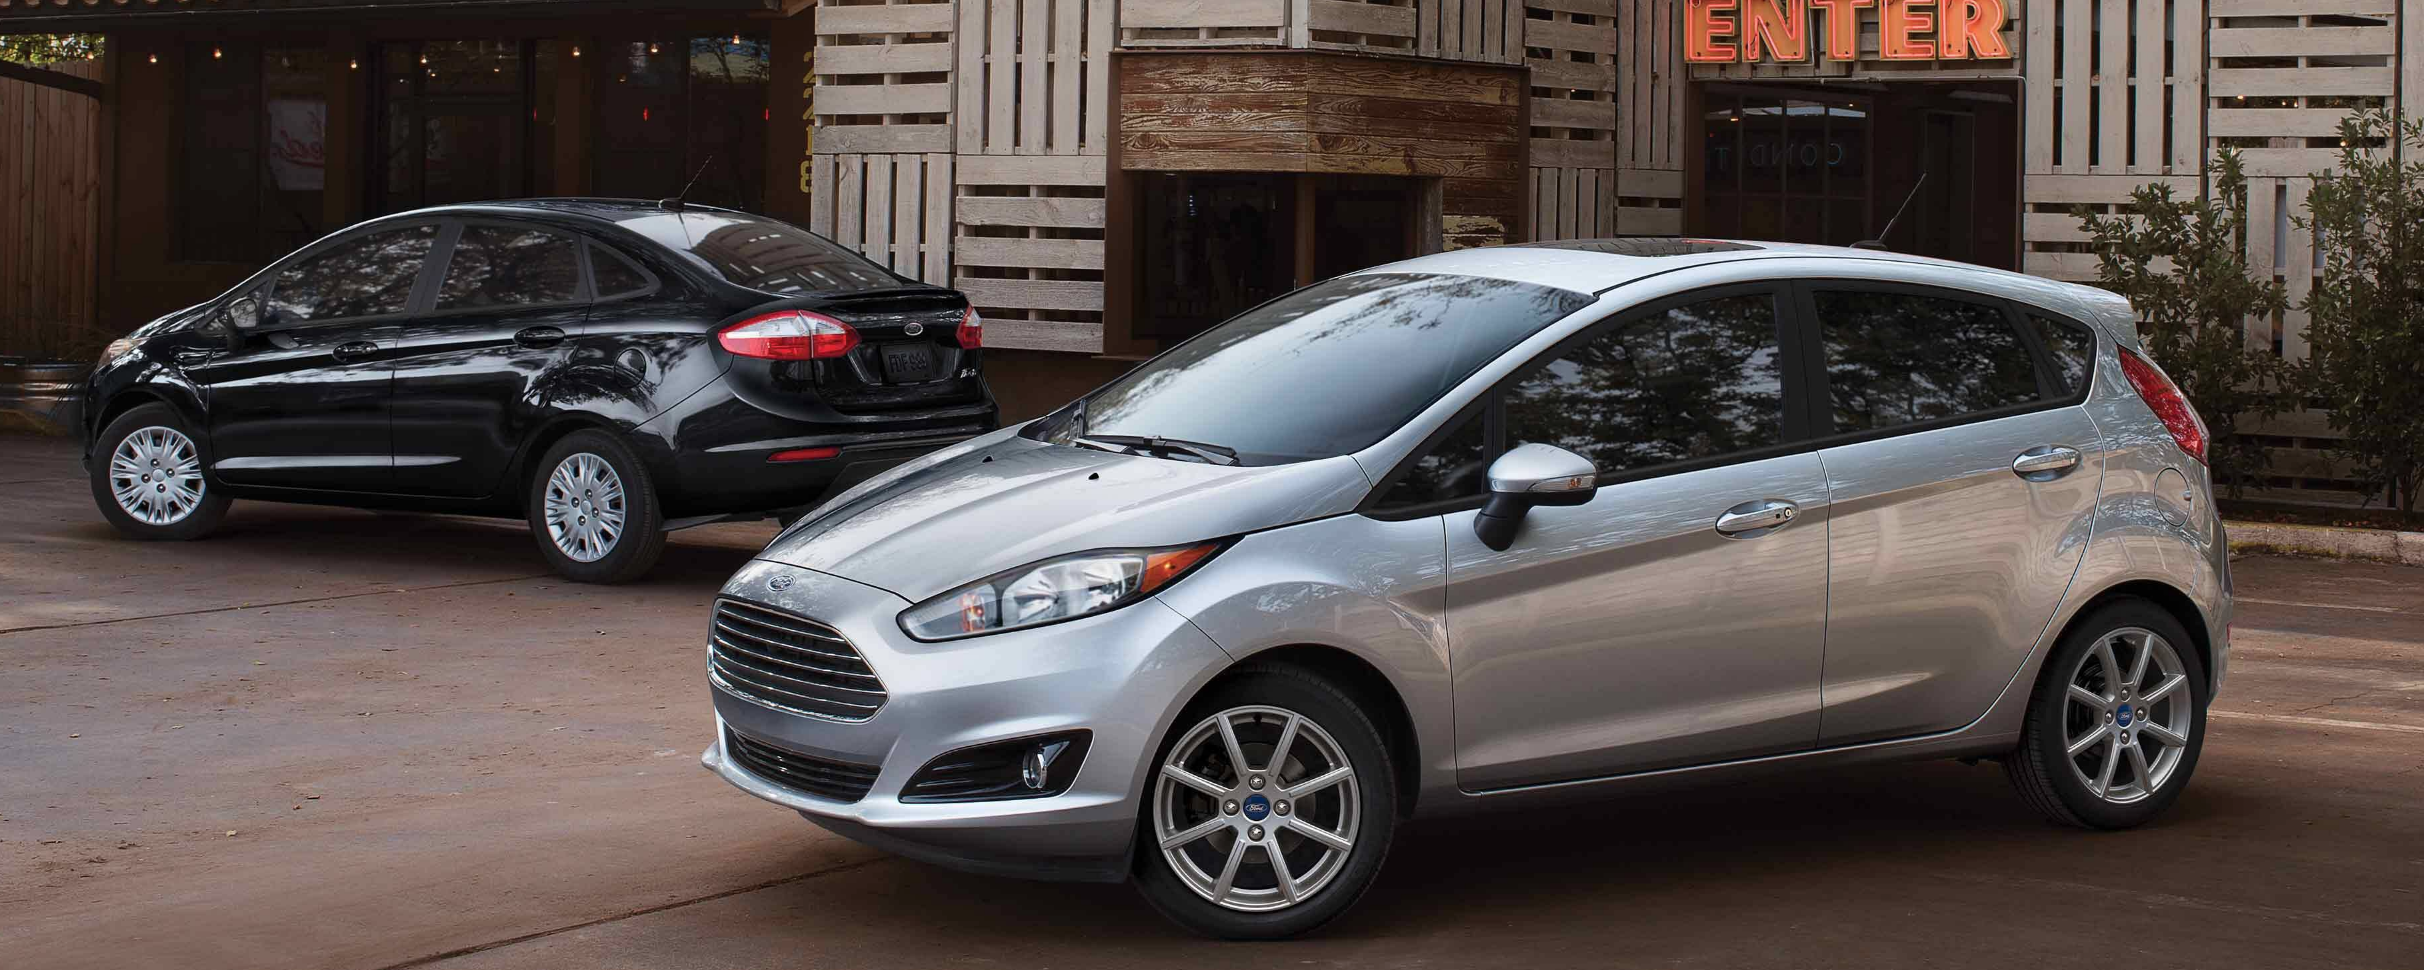 Ford Fiesta in Winston-Salem